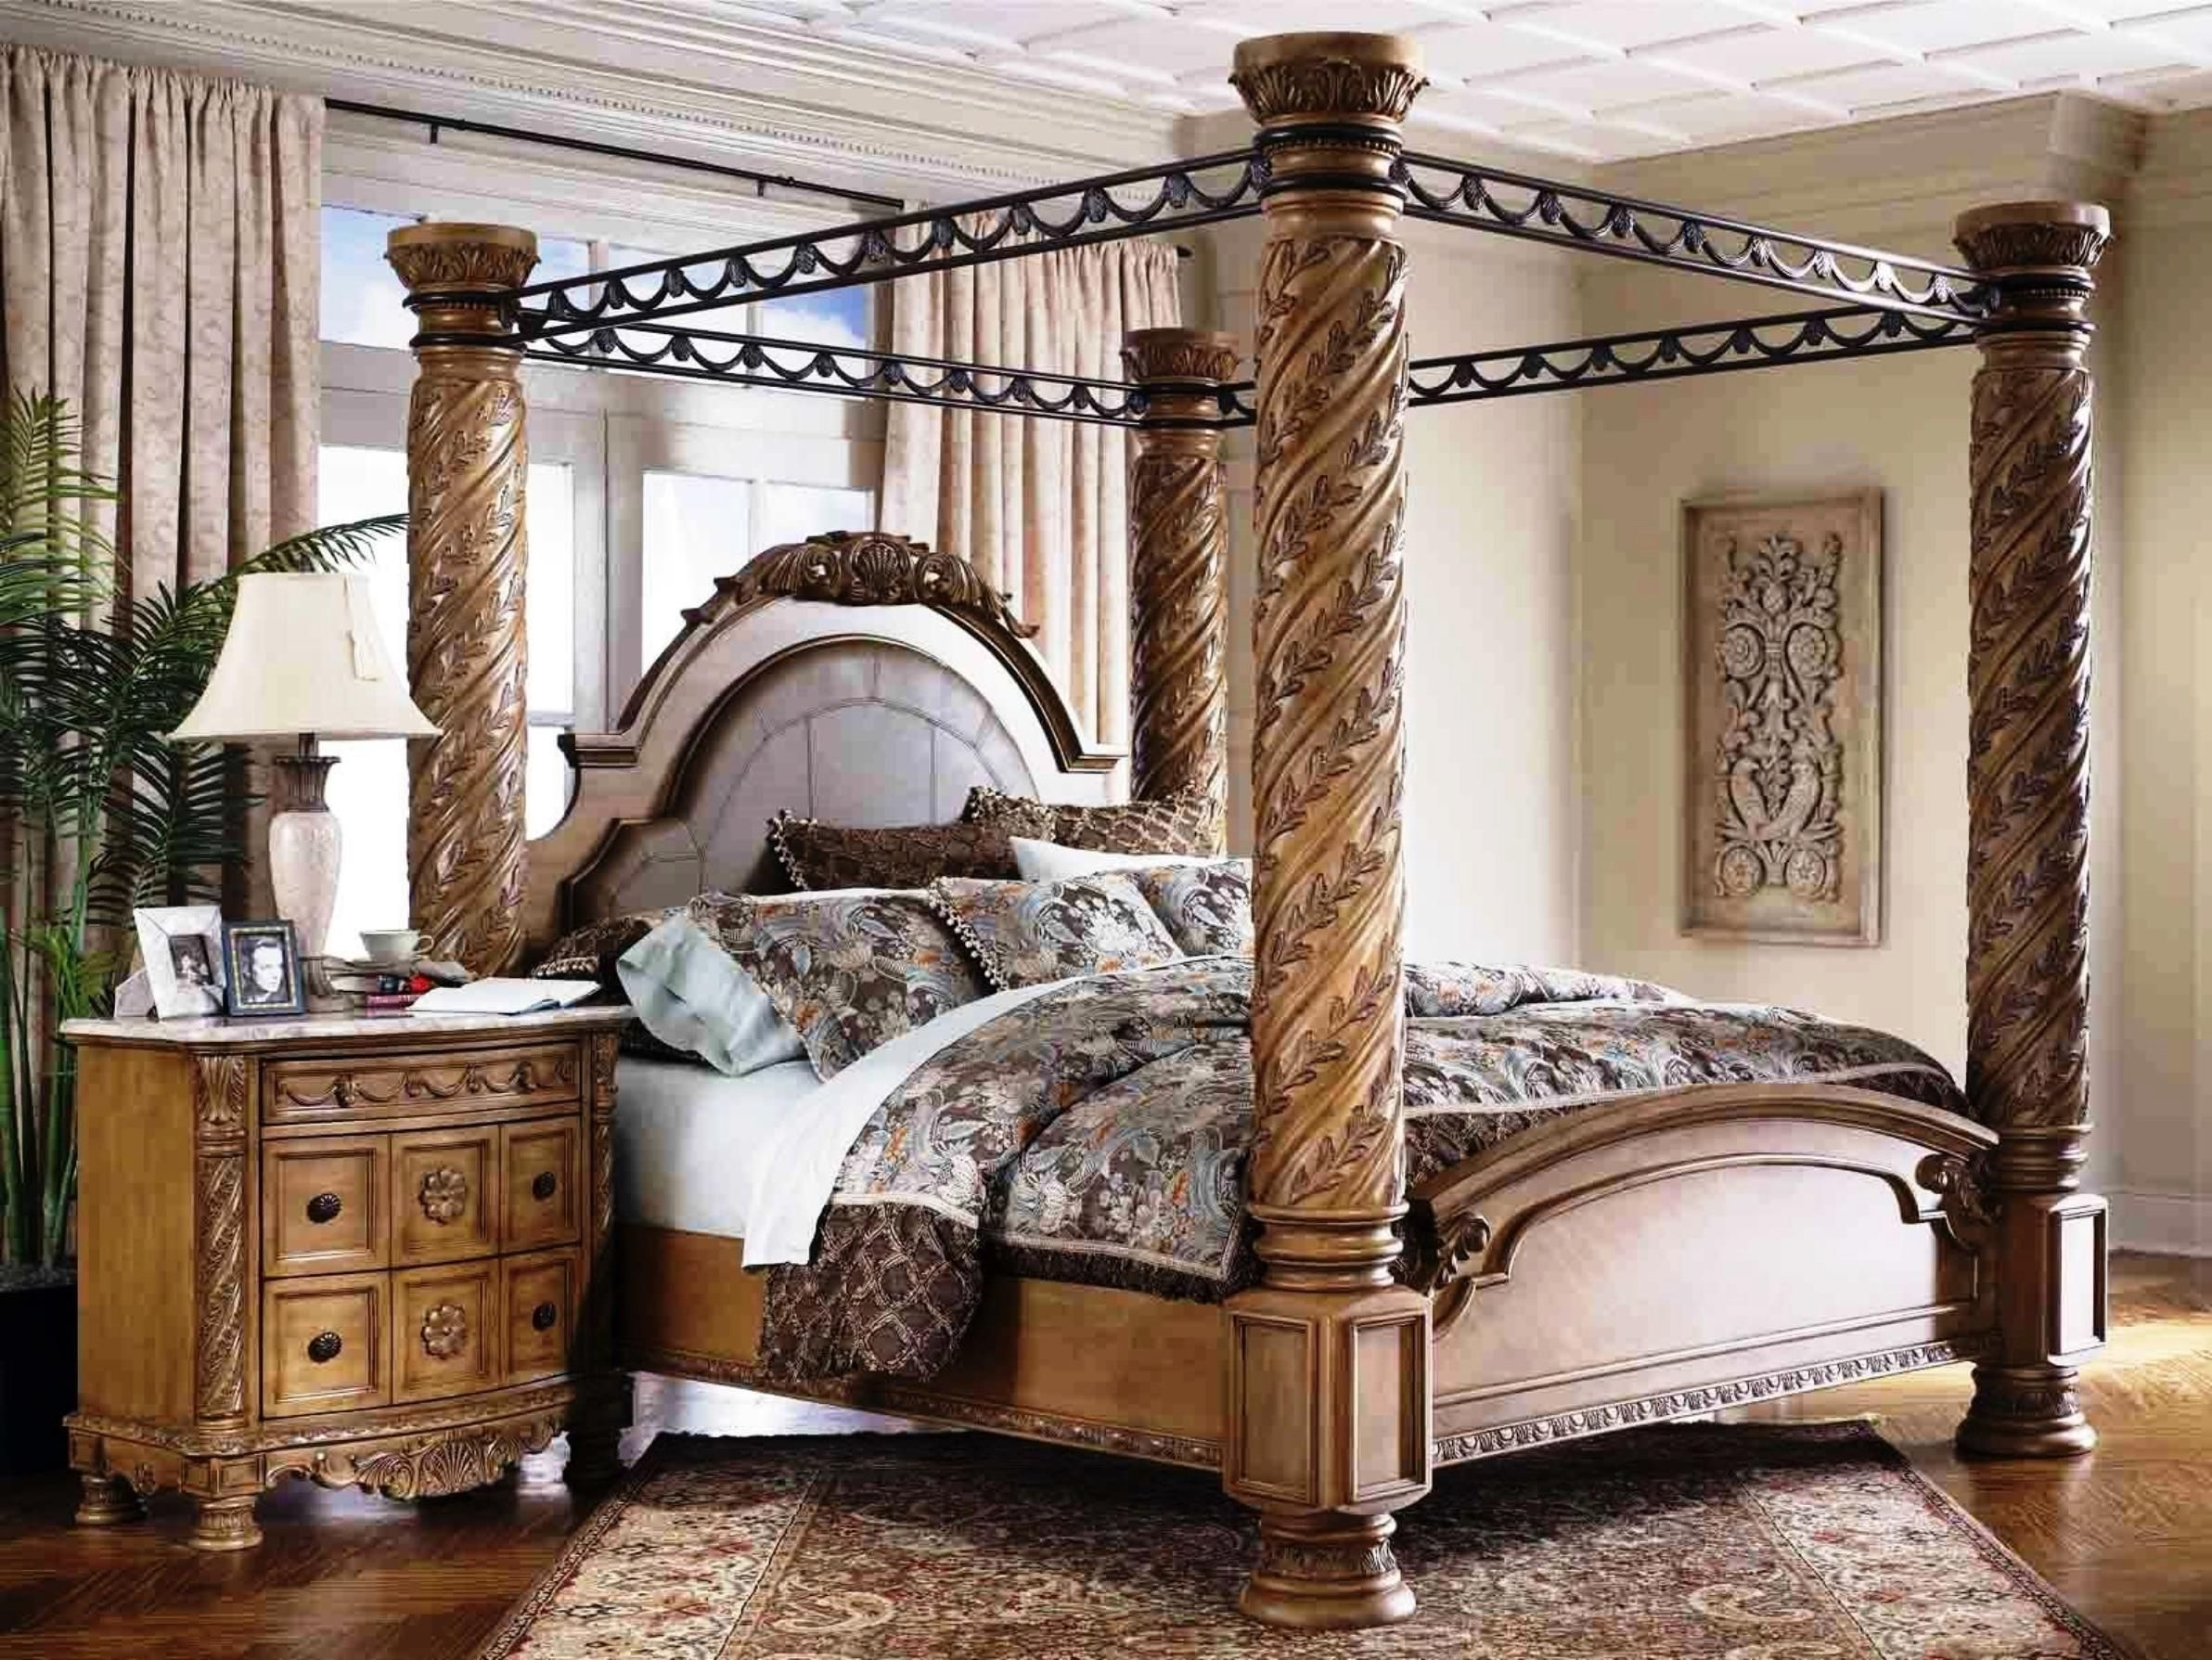 Four poster king bed sets & Four Poster King Bed Sets - Foter